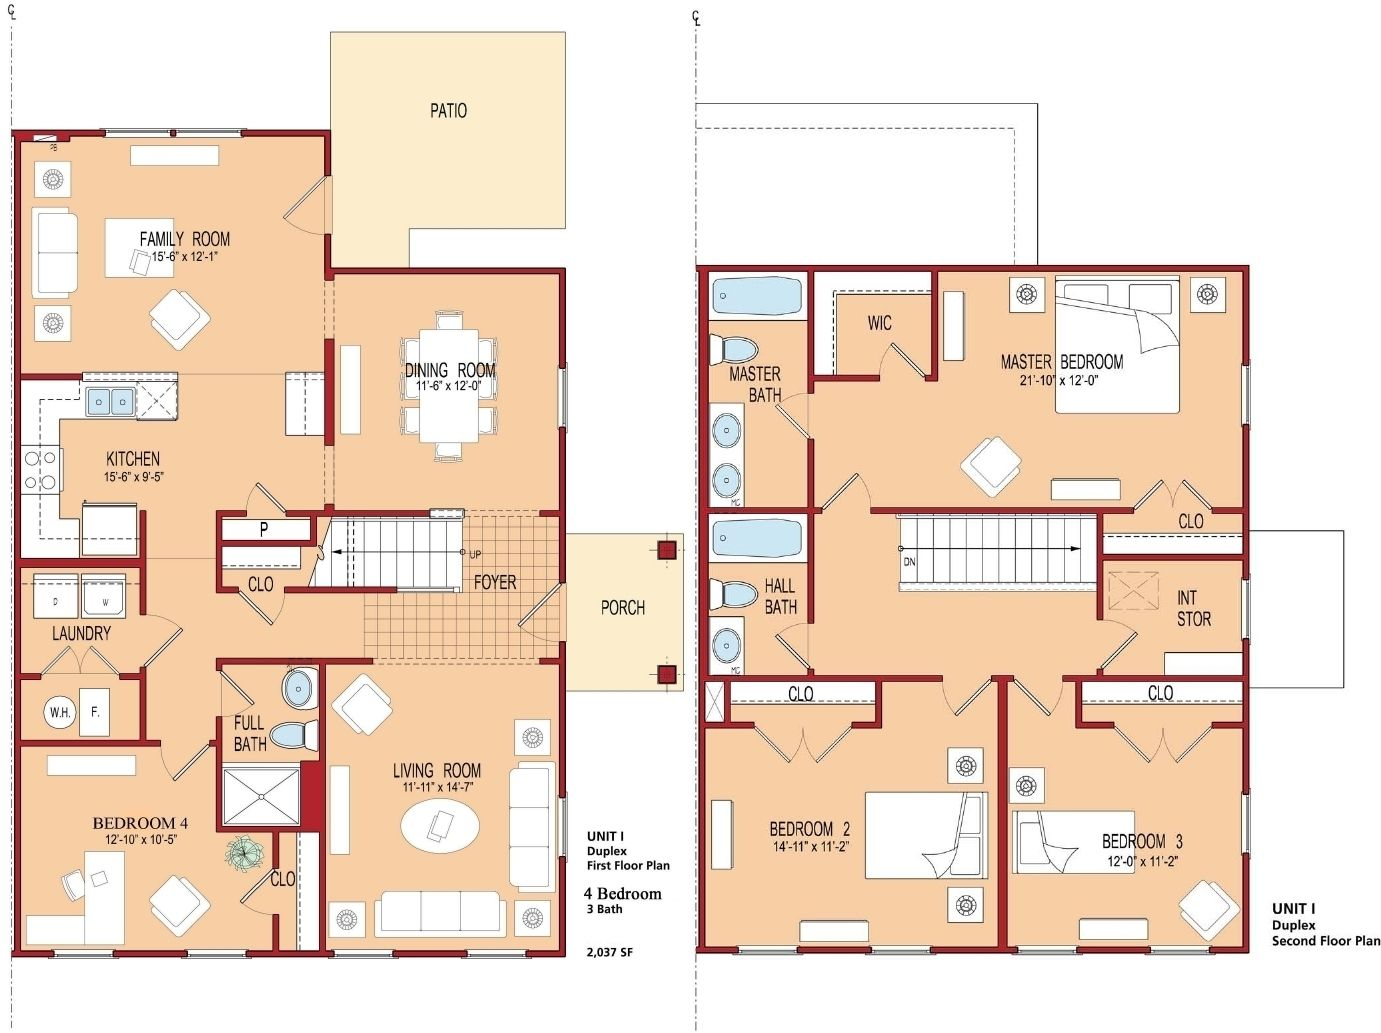 bedroom beautiful 4 bedroom house plans and 4 bedroom floor bedroom beautiful 4 bedroom house plans and 4 bedroom floor plans dvasquezco brilliant 4 bedroom